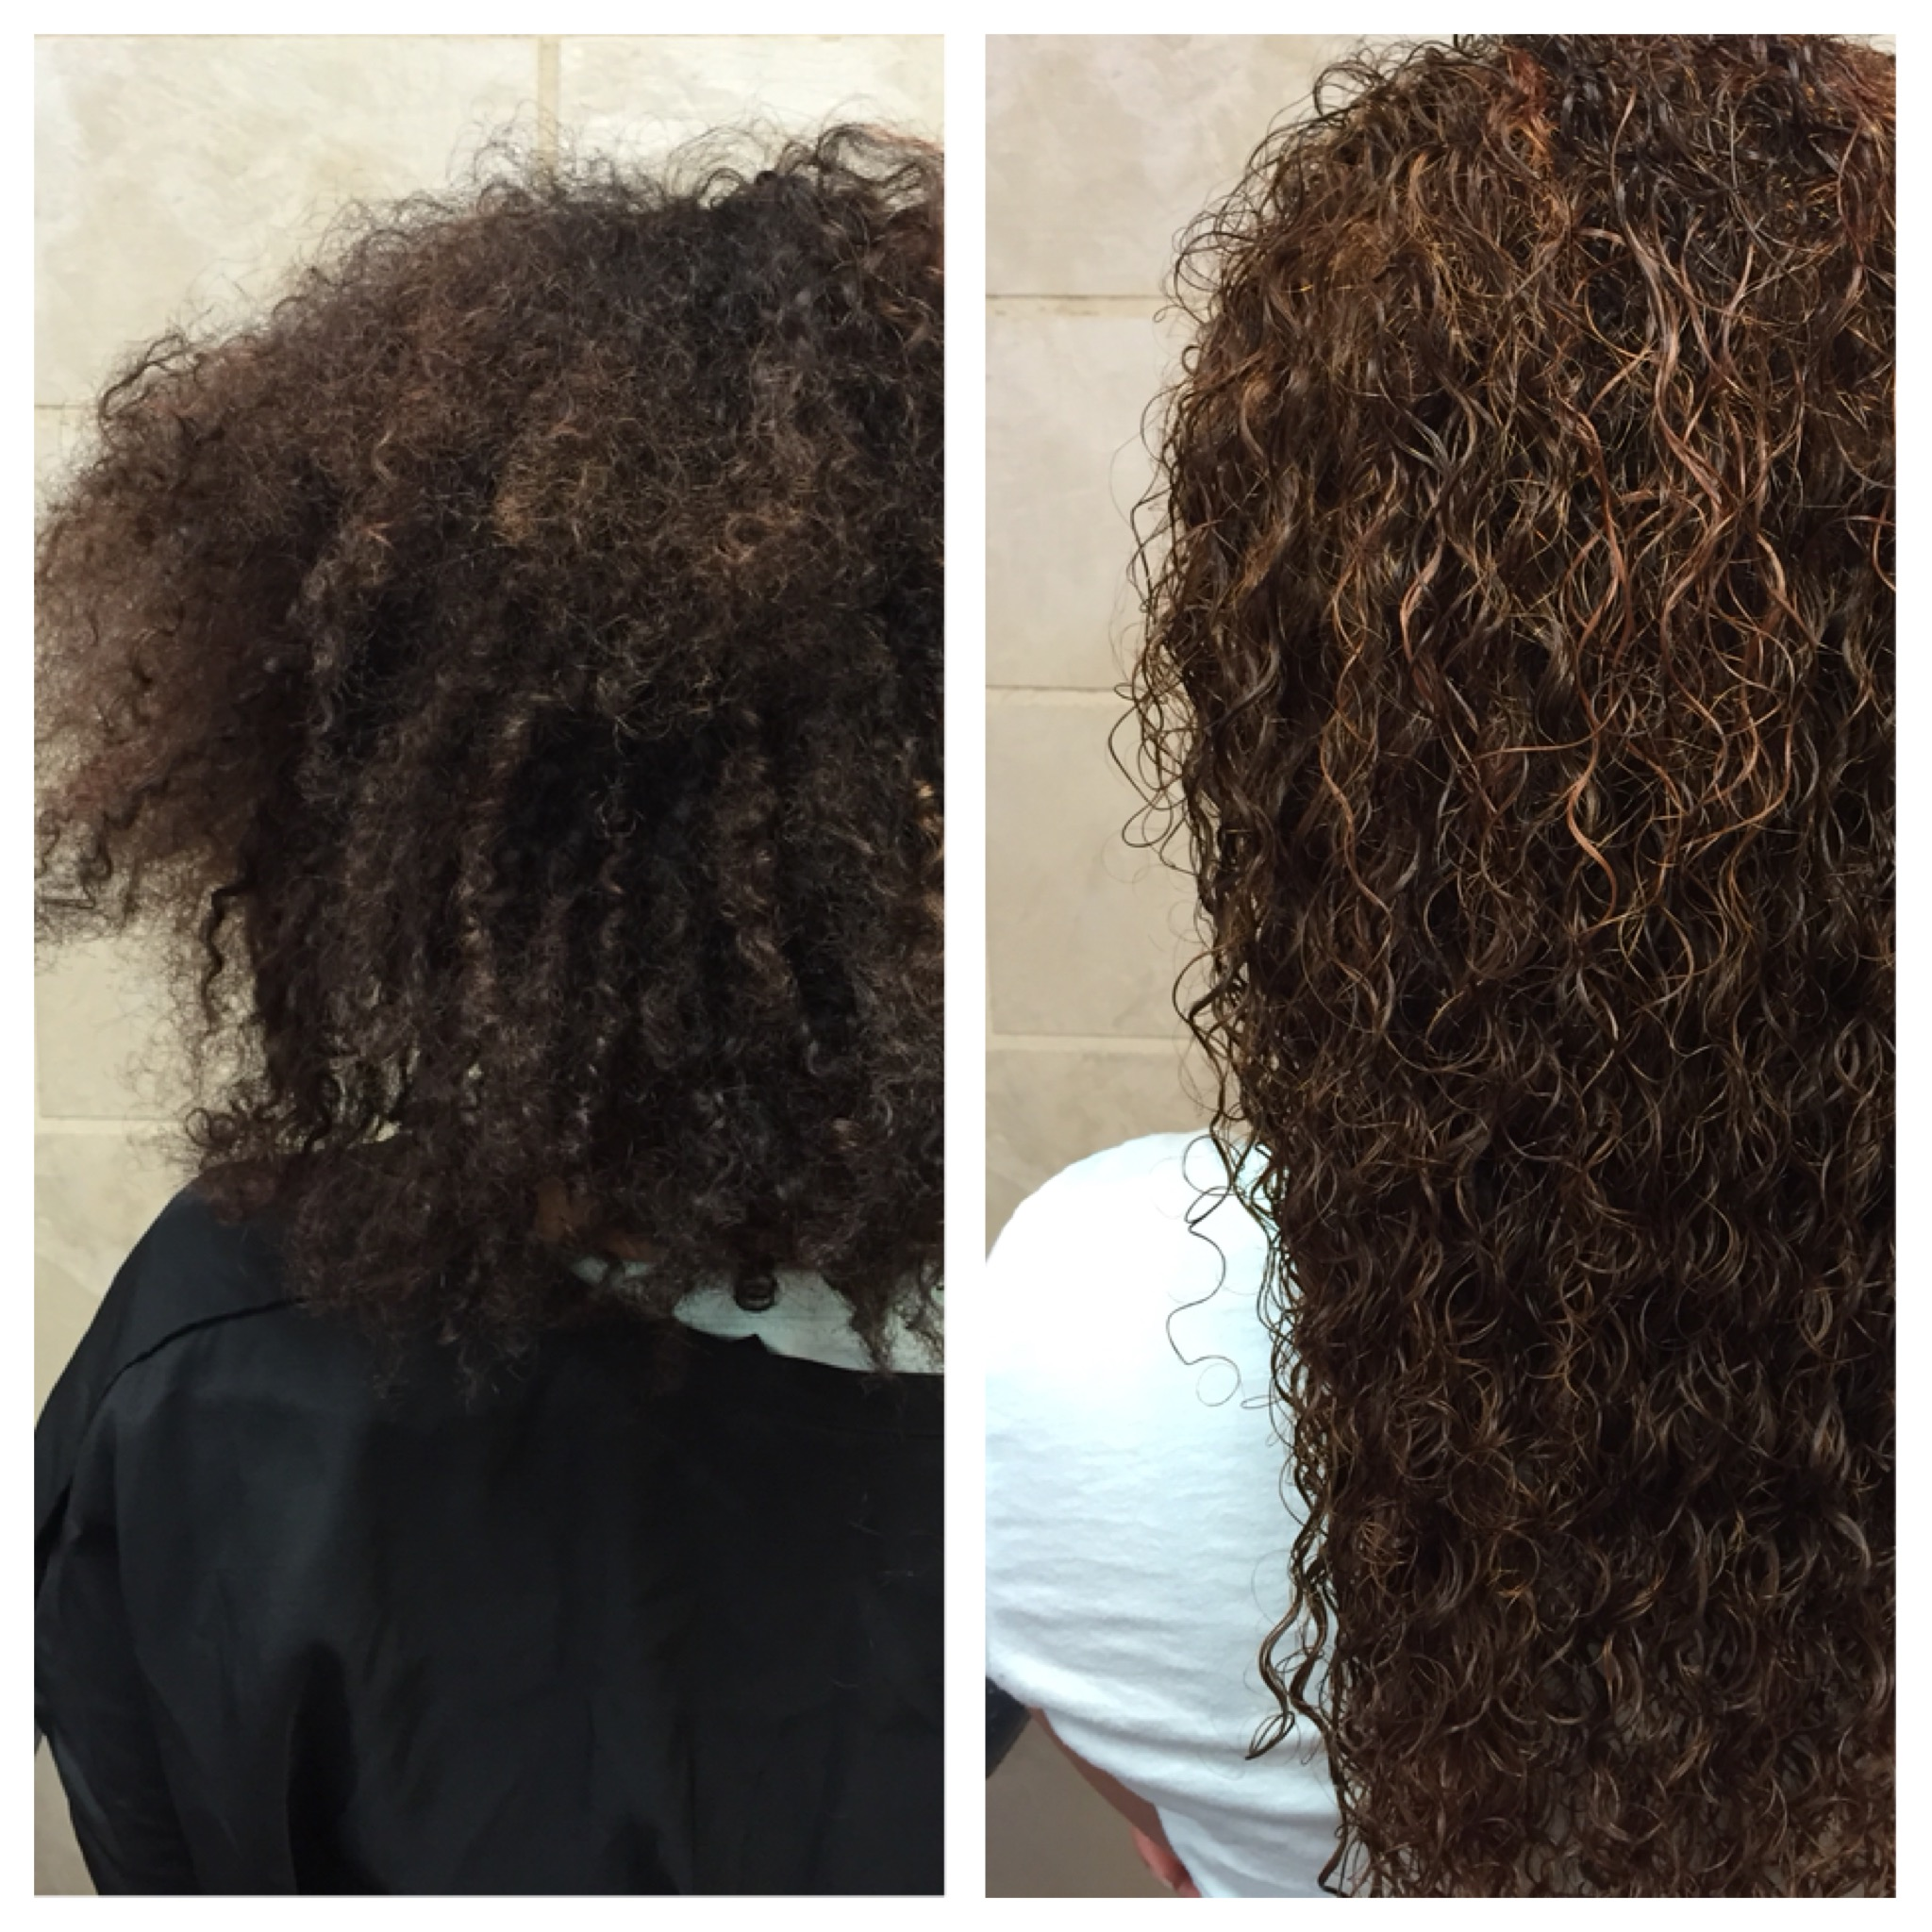 Natural curly hair extensions Charlotte, NC